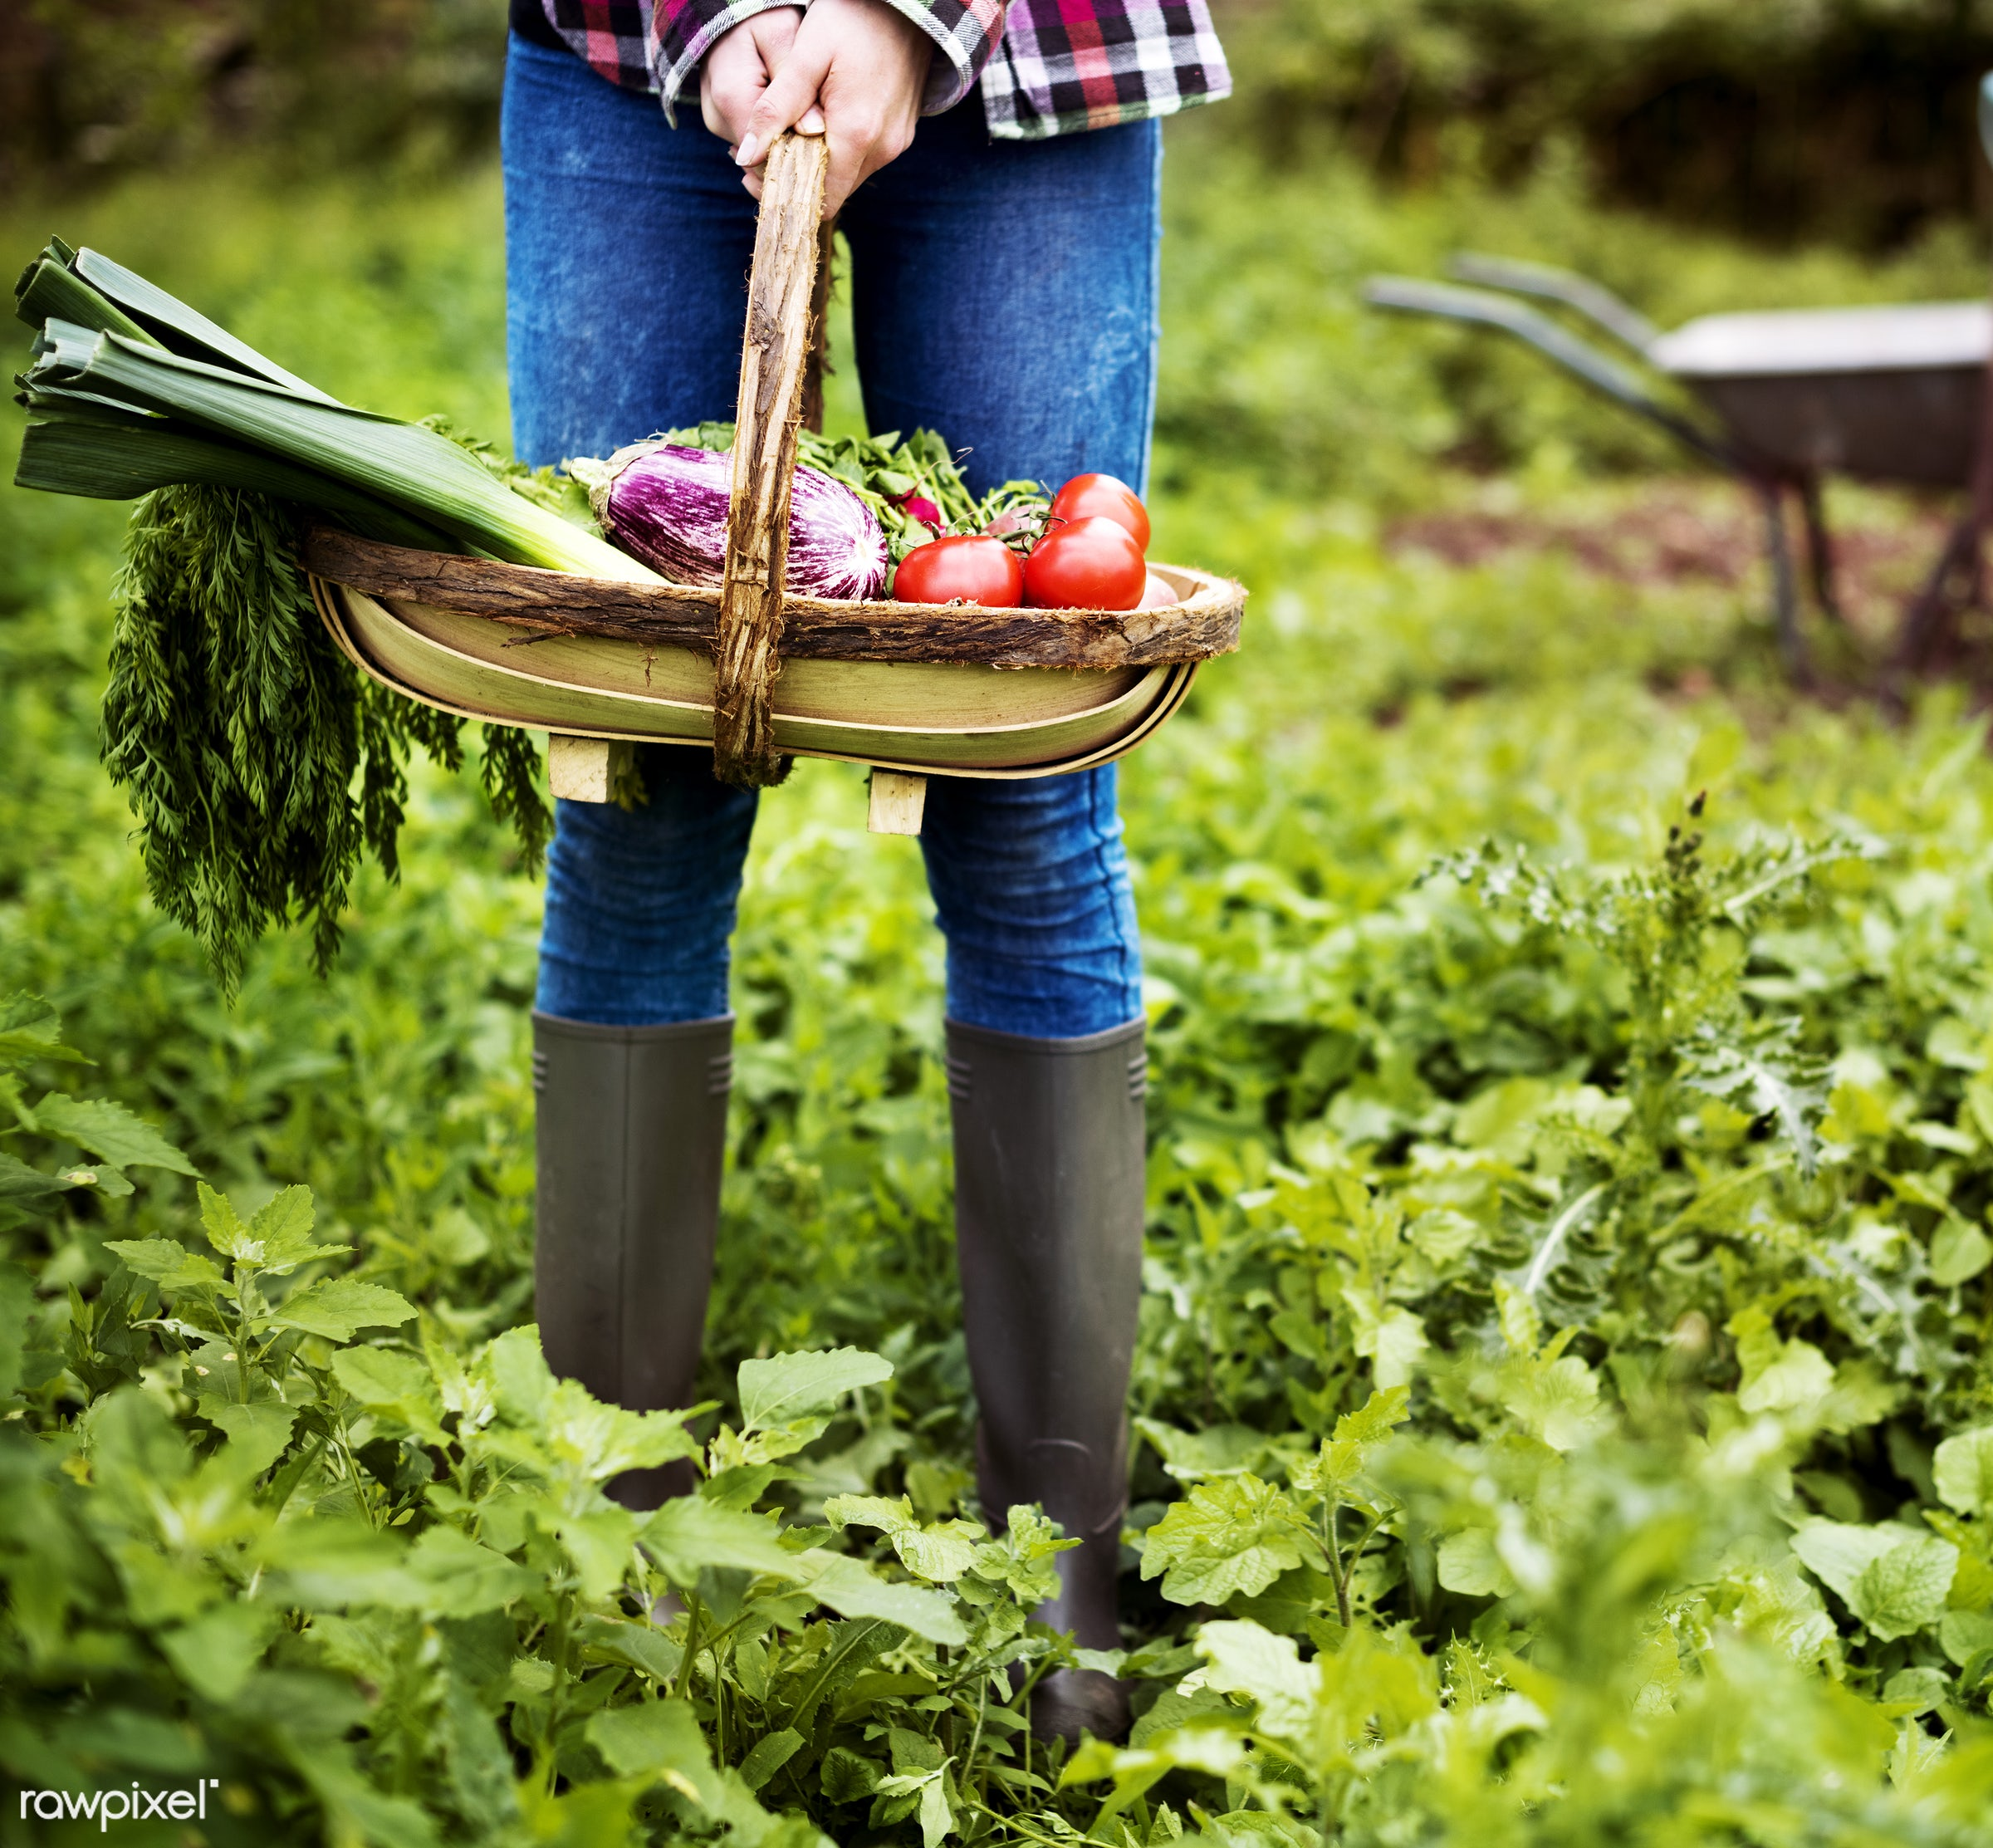 Vegetable farm - farm, garden, countryside, gardening, adult, boots, botanical, botany, country, cultivate, cultivating,...